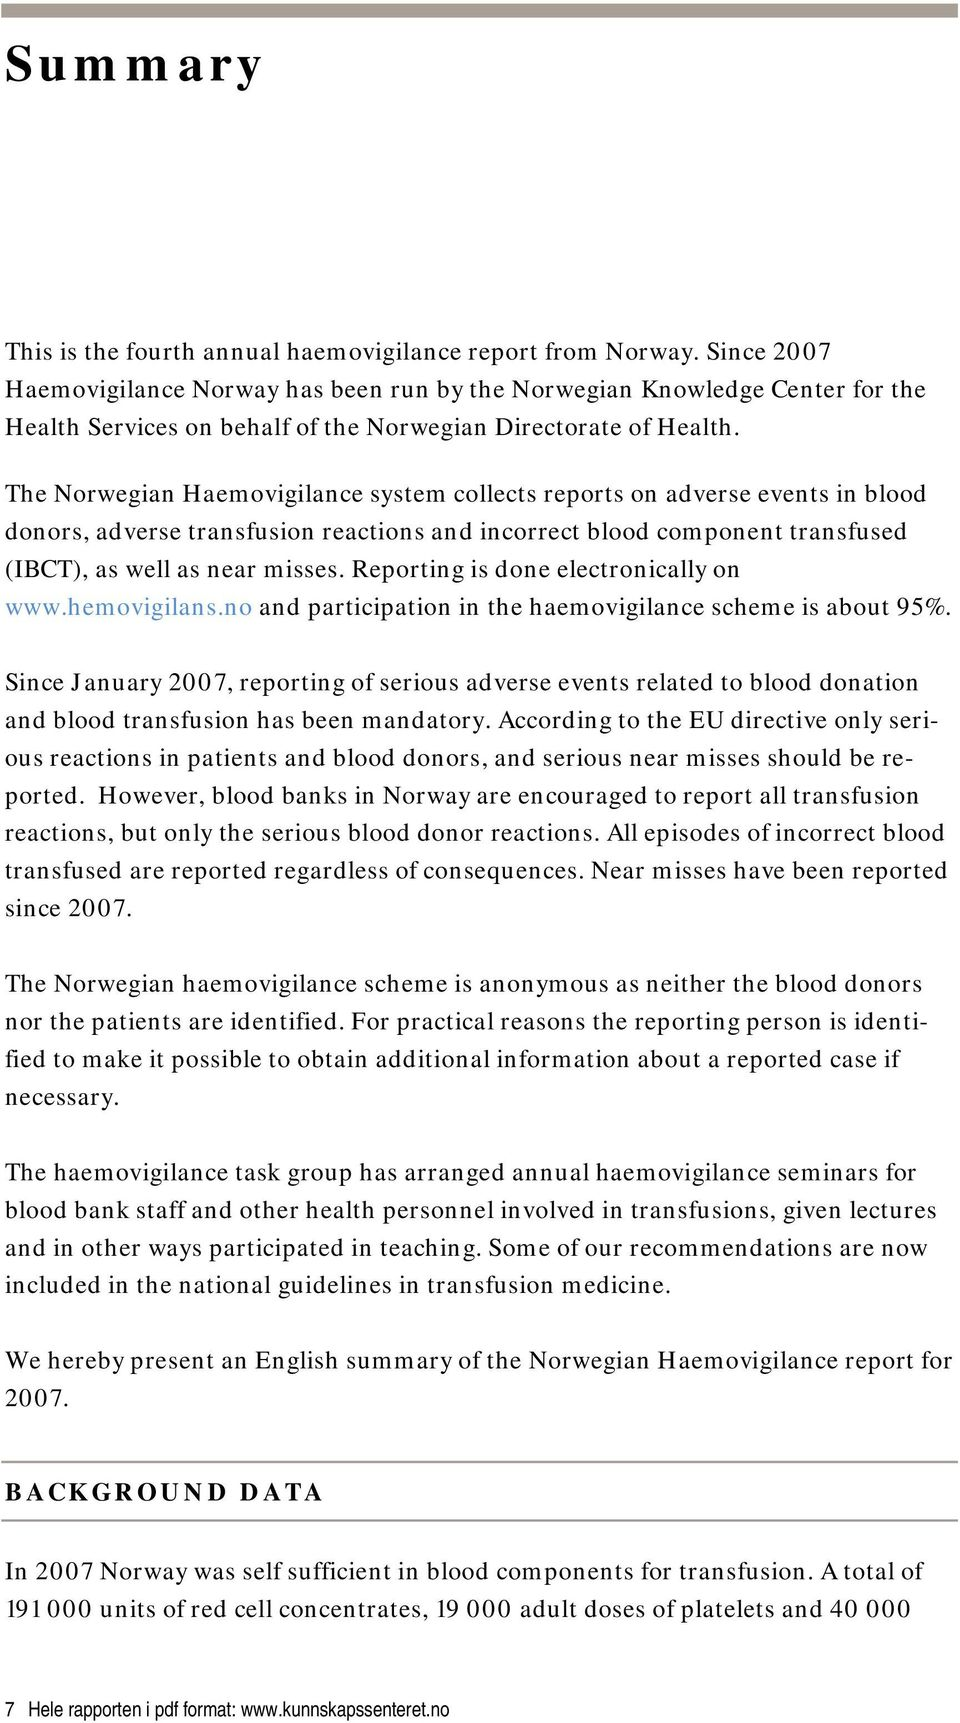 The Norwegian Haemovigilance system collects reports on adverse events in blood donors, adverse transfusion reactions and incorrect blood component transfused (IBCT), as well as near misses.